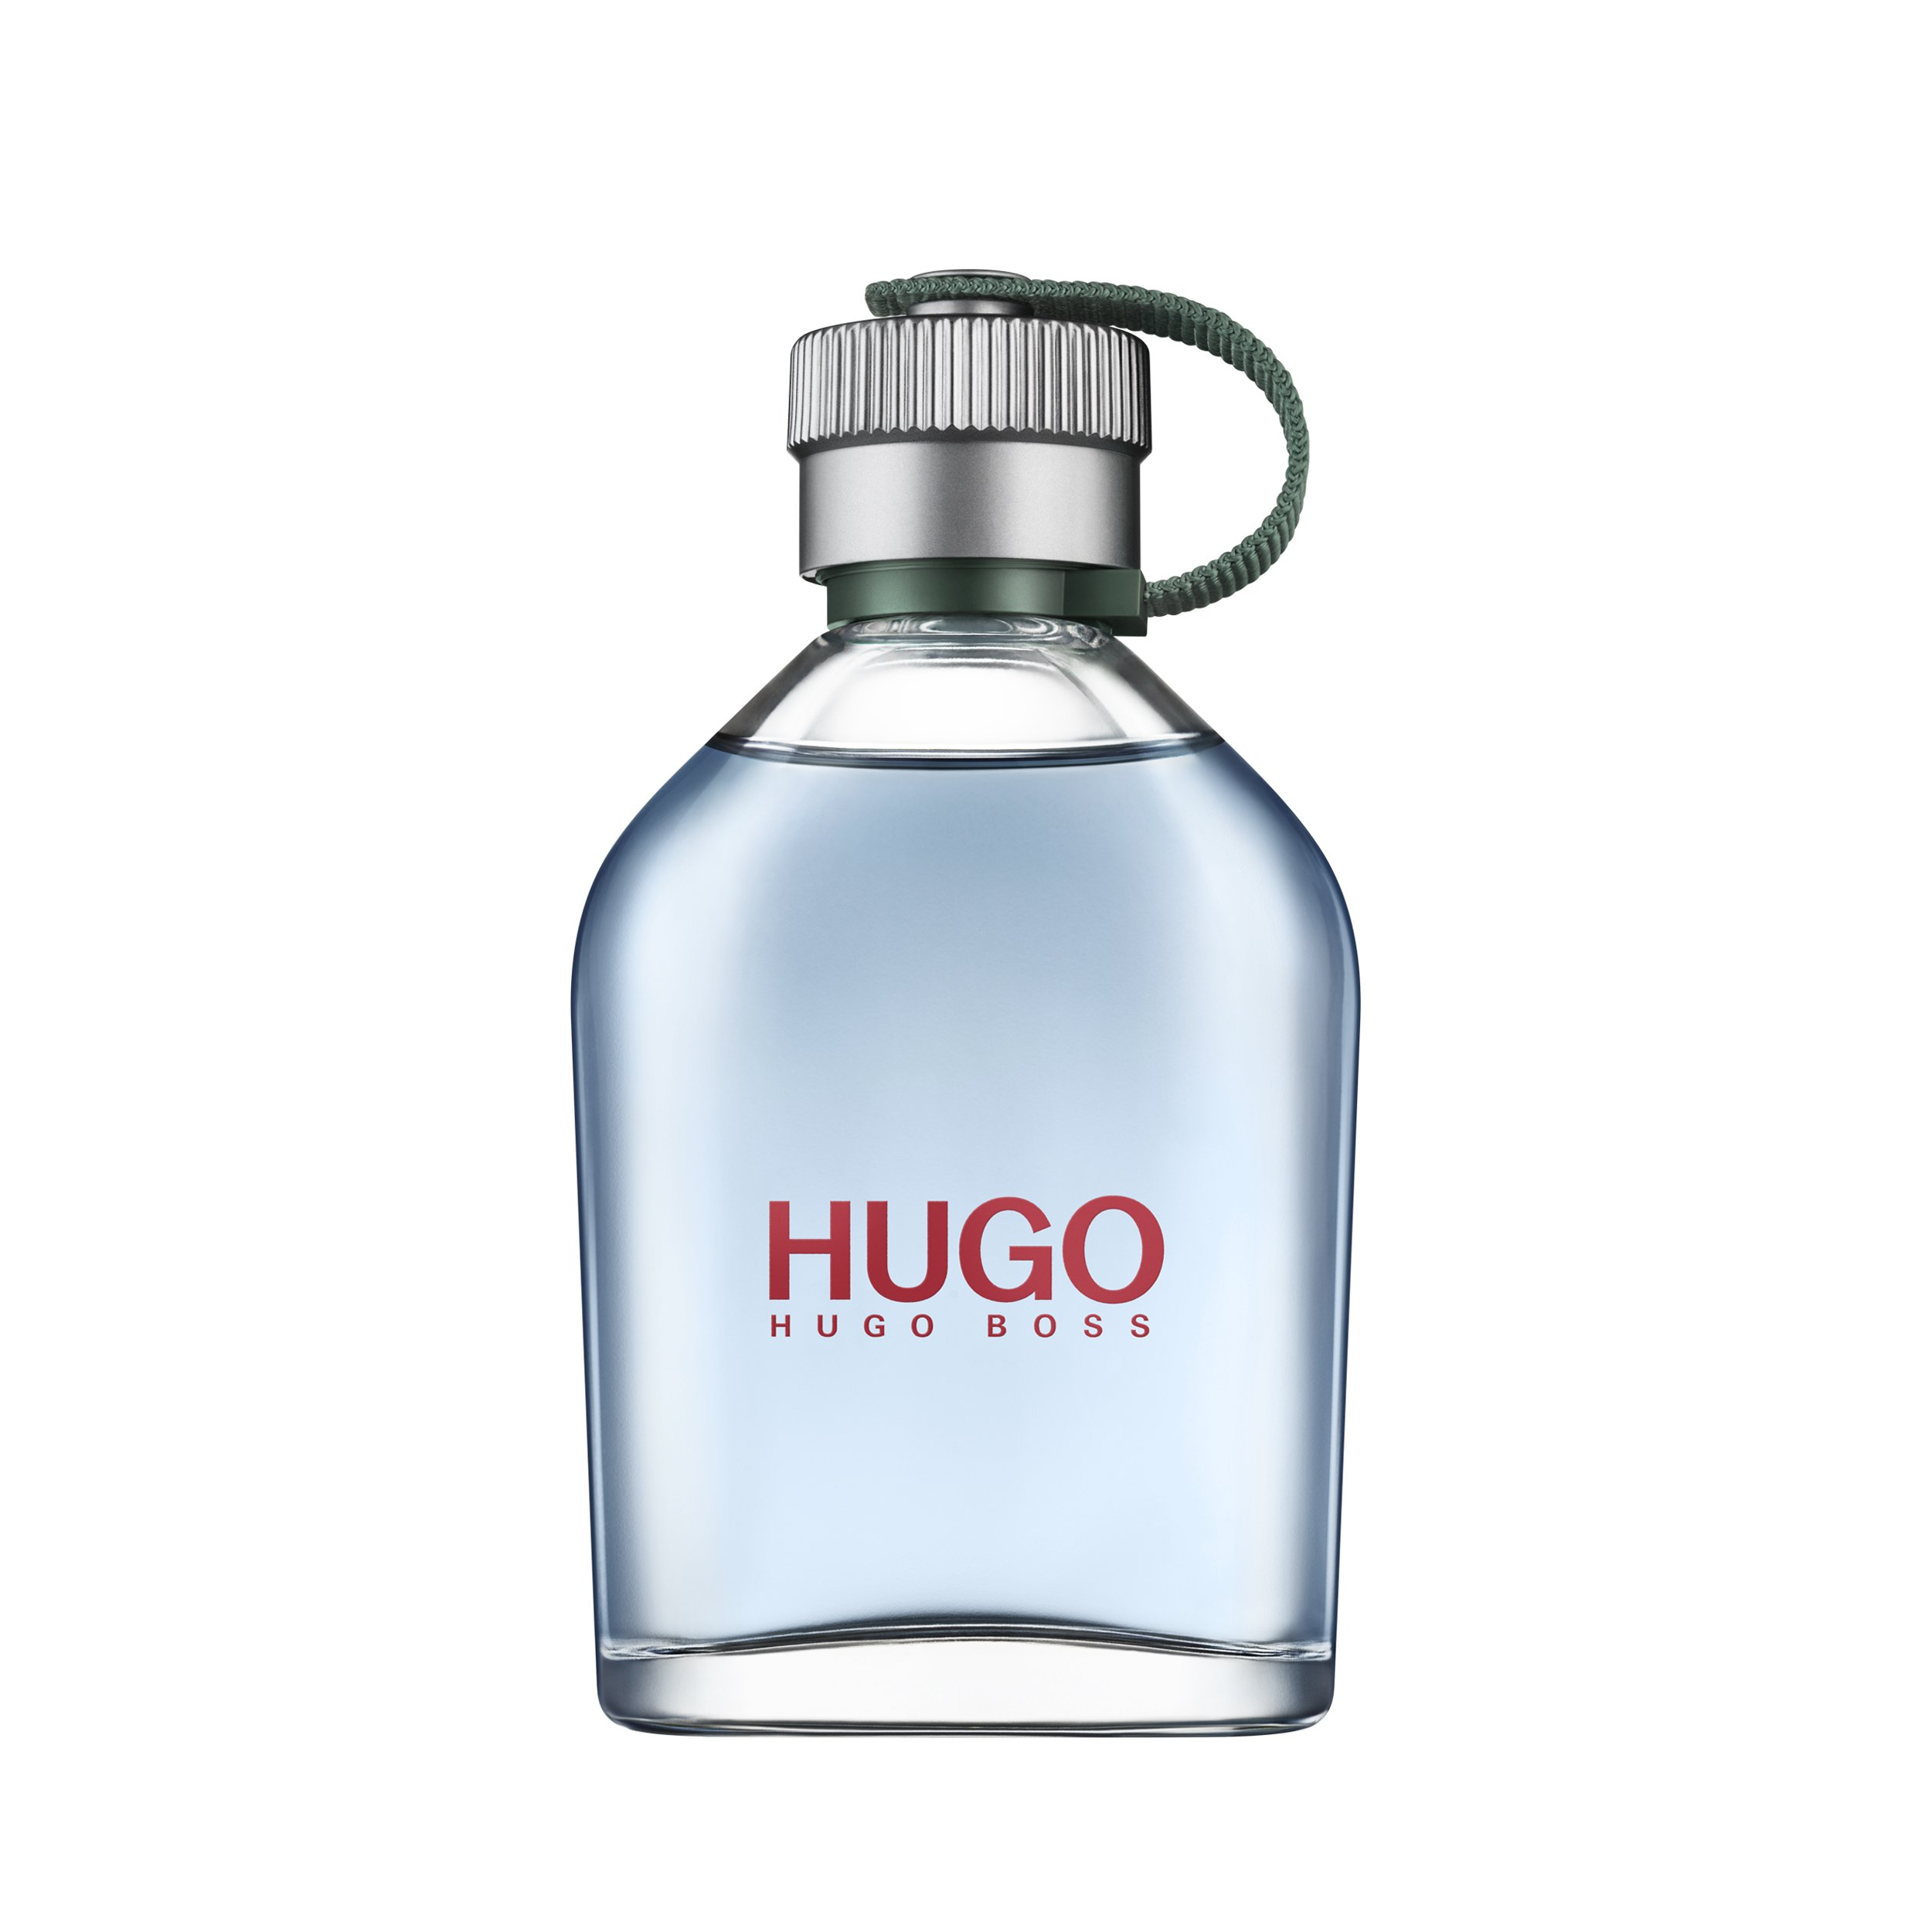 Amazon.com: Hugo Boss MAN Eau de Toilette, 2.5 Fl Oz: HUGO